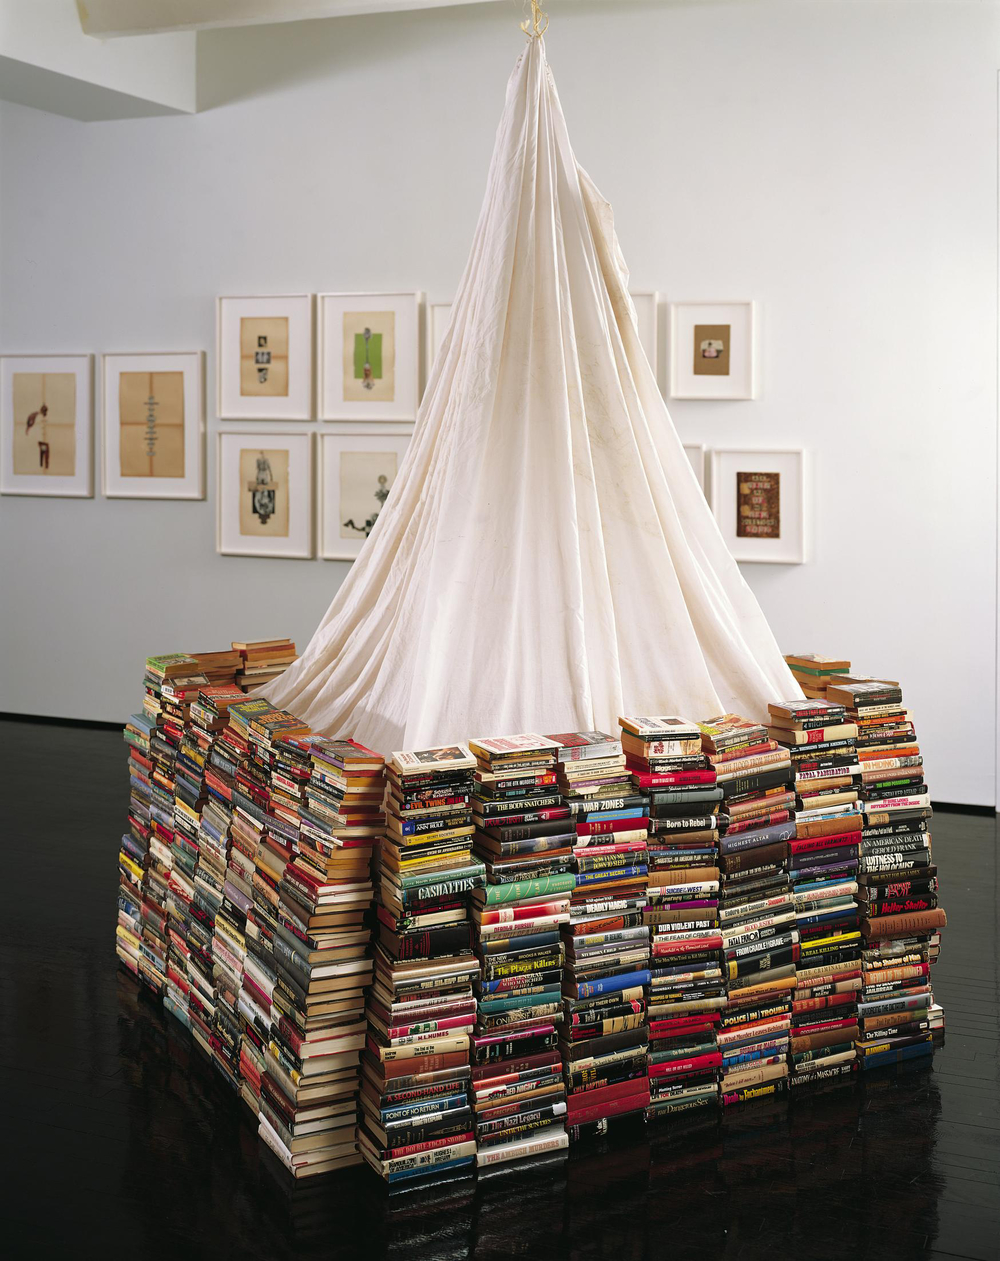 Book Fort, 2006-07, Mixed Media, 141.7 x 74.8 x 80.7 inches.  Courtesy of the Dash Snow Archive, New York City.